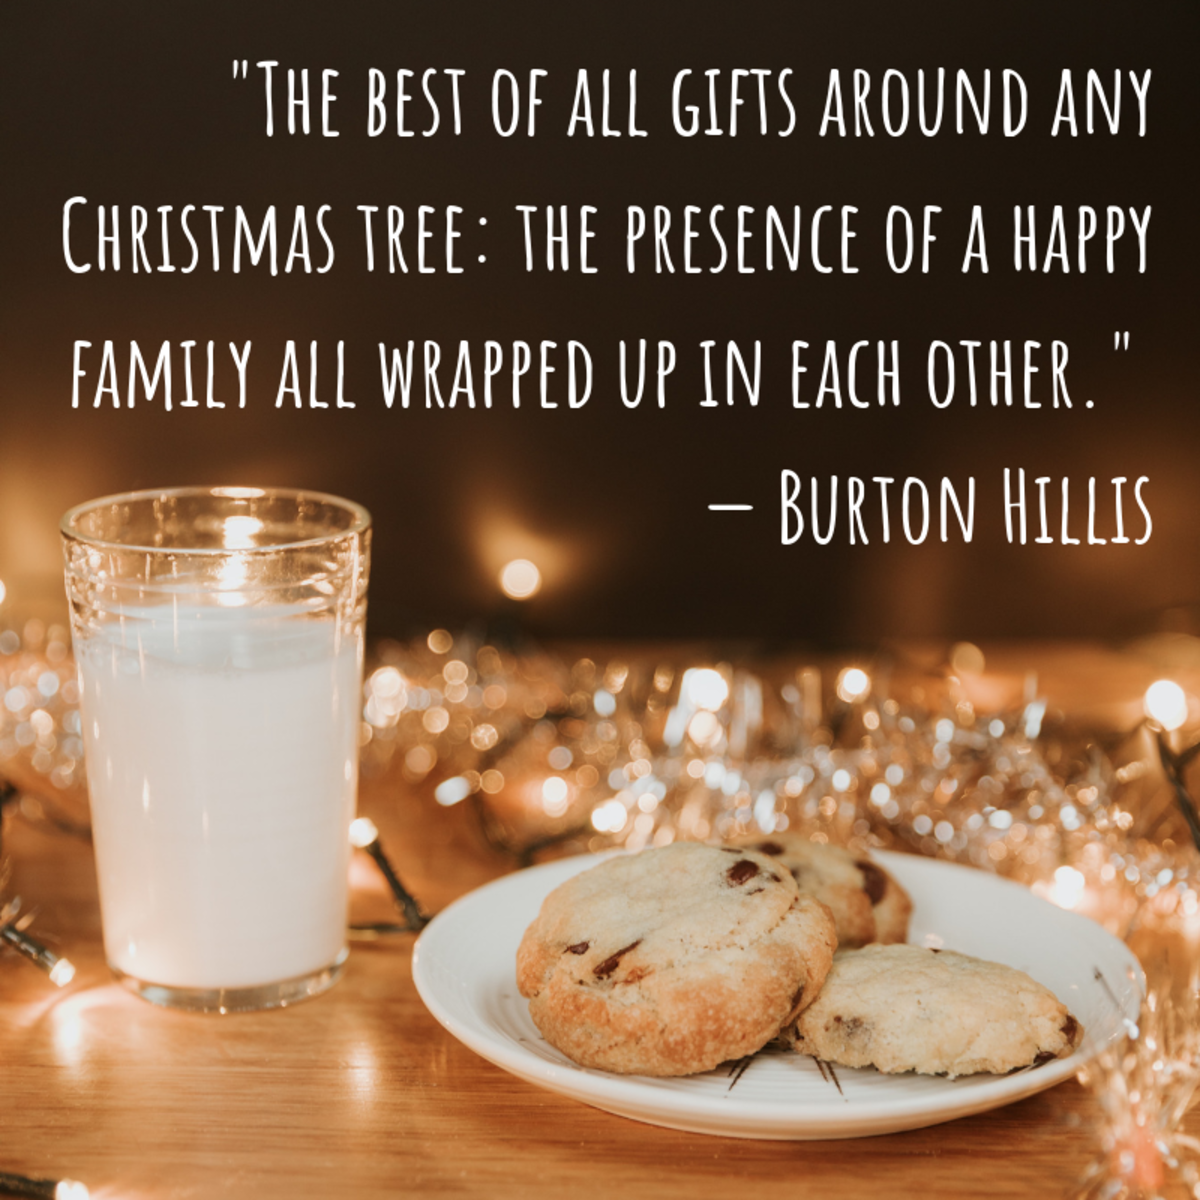 This verse stresses the importance of the best Christmas presents of all—the presence of our loved ones.